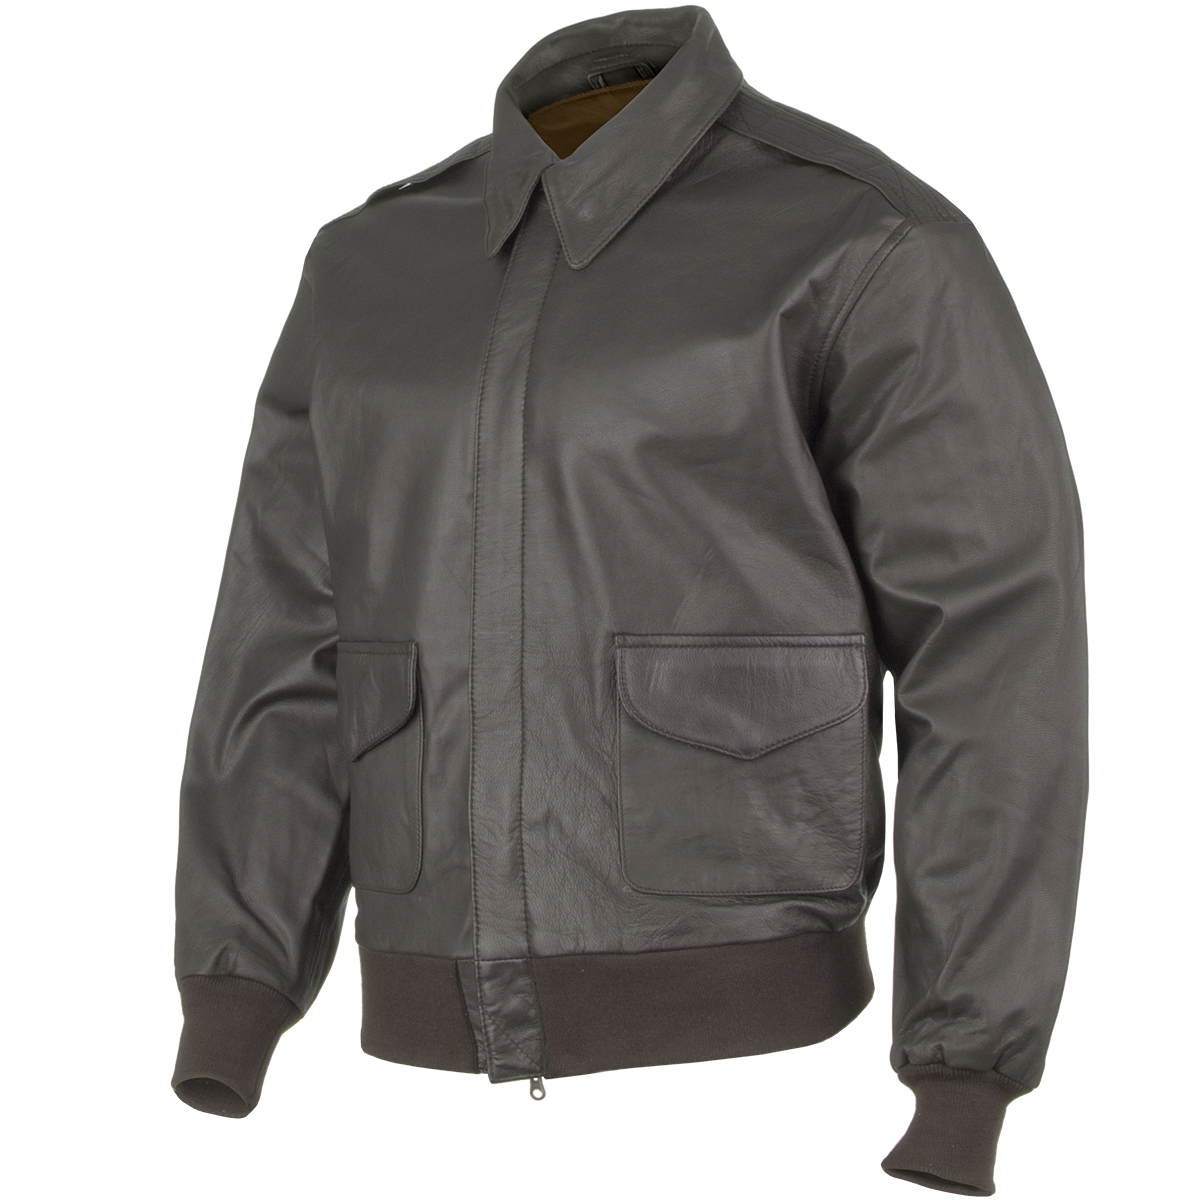 Mil-Tec A-2 Leather Flight Jacket Brown | Flight | Military 1st